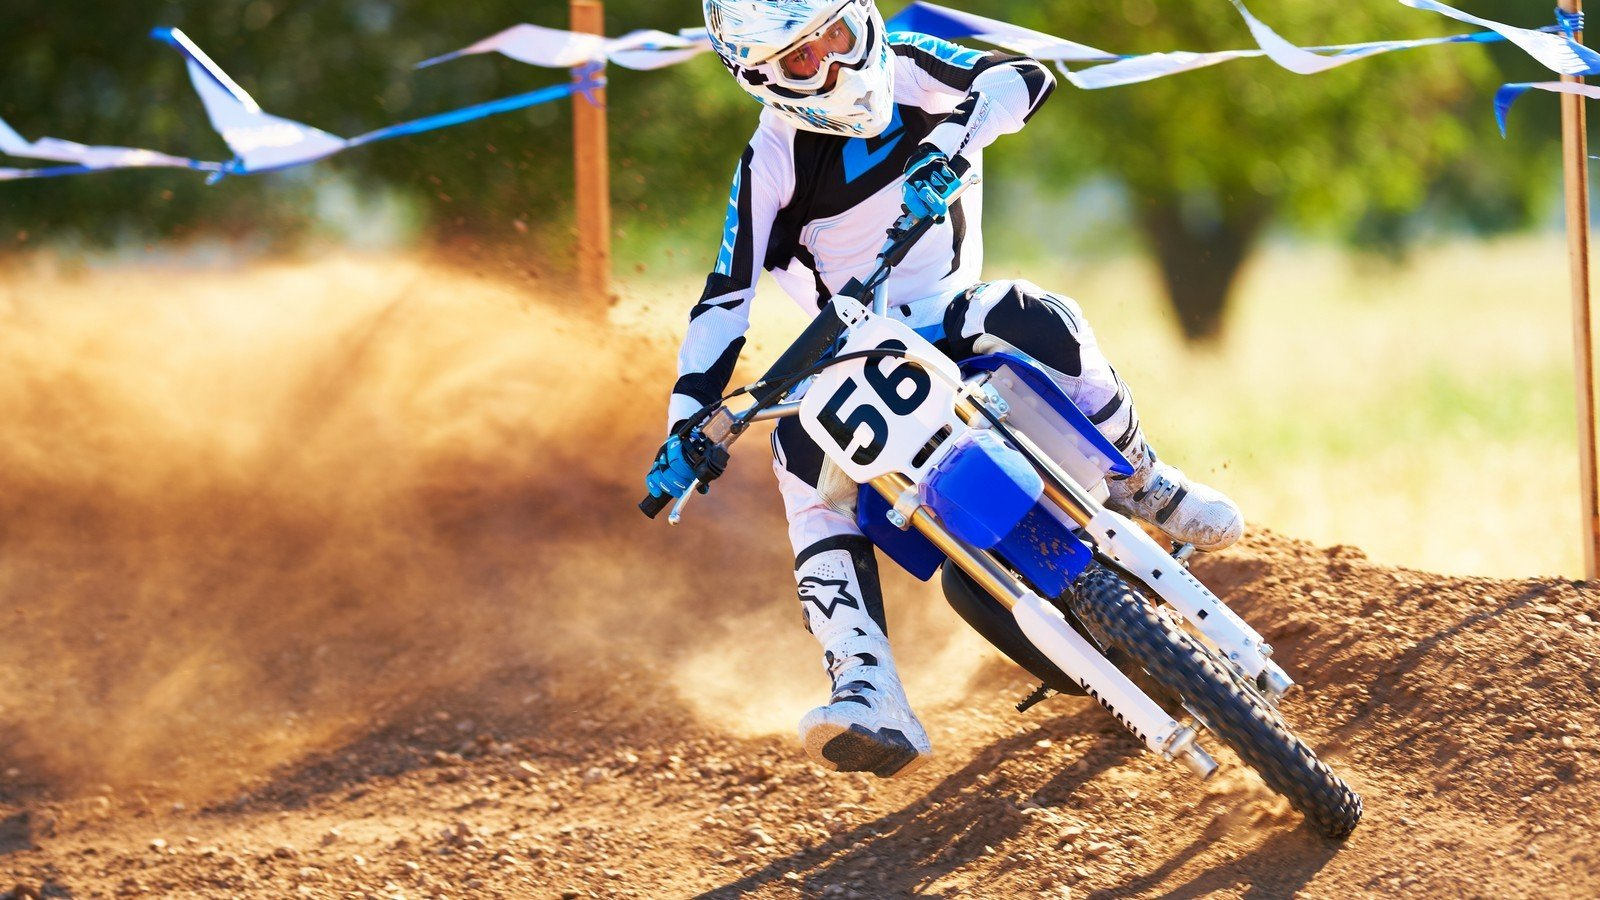 2013 yamaha yz85 picture 464544 motorcycle review for Yamaha yz85 top speed